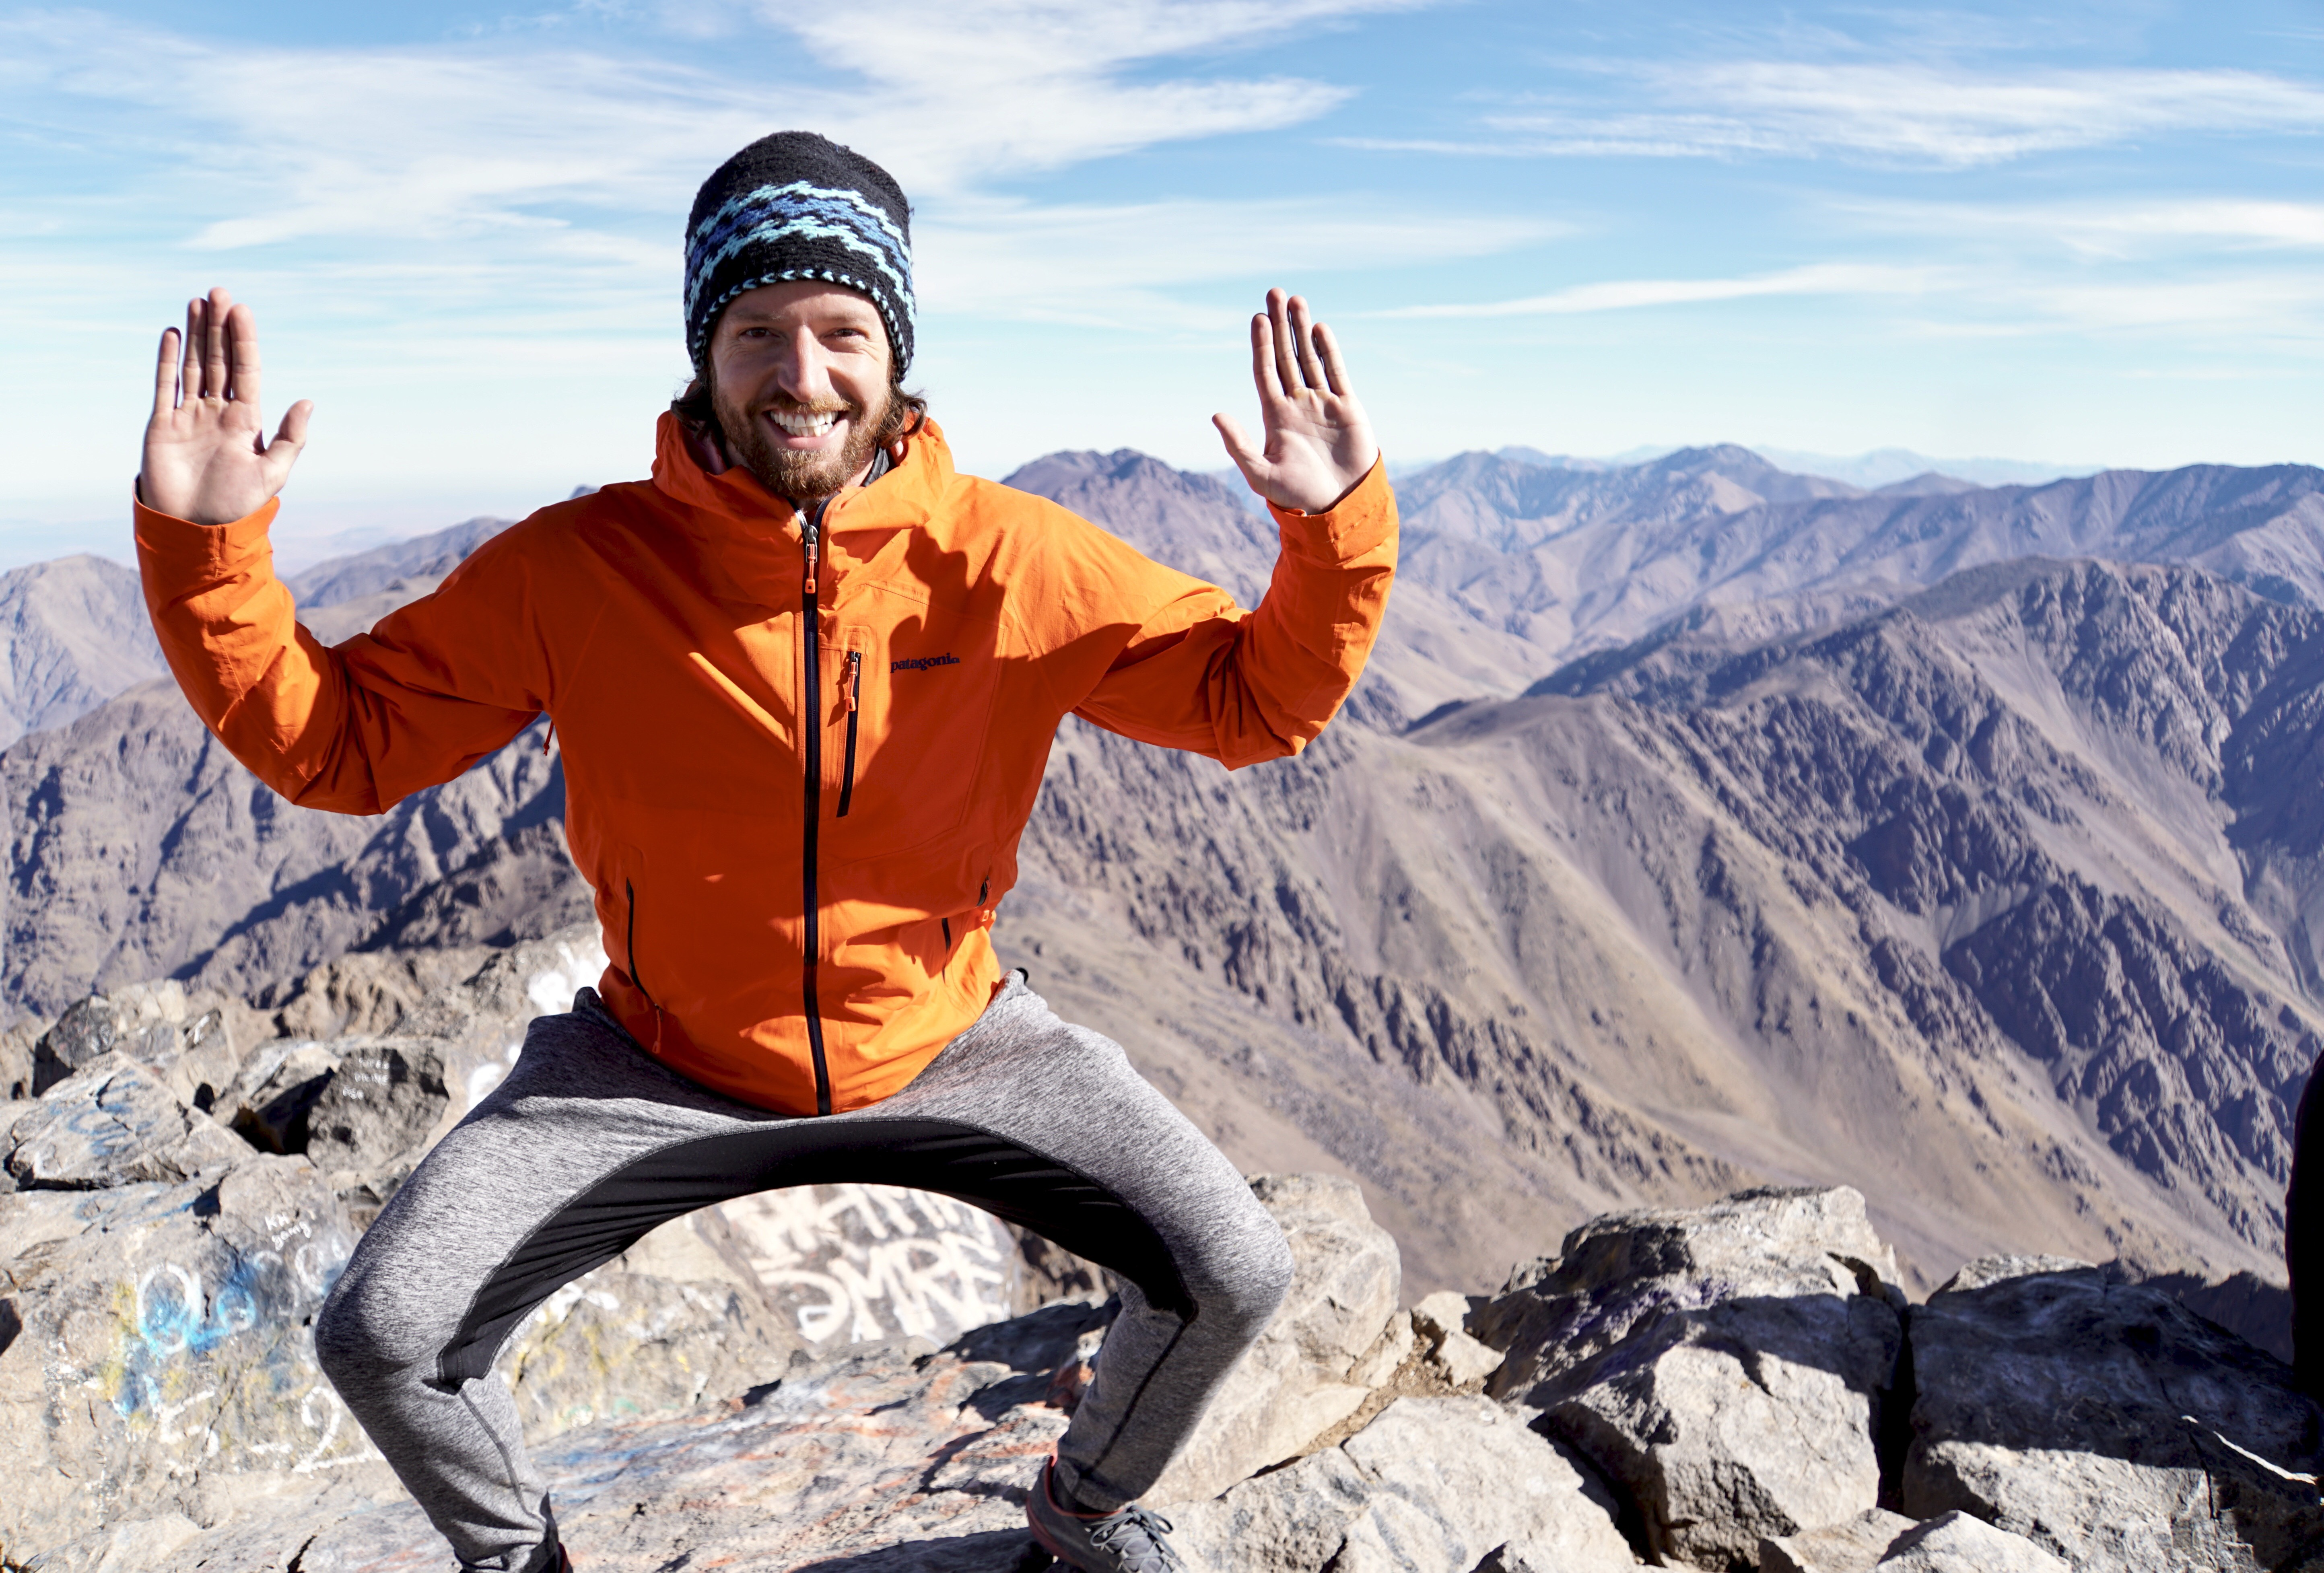 Trevor Gerhardt practicing a yoga pose on top of Toubkal, the tallest mountain in North Africa, located in Morocco